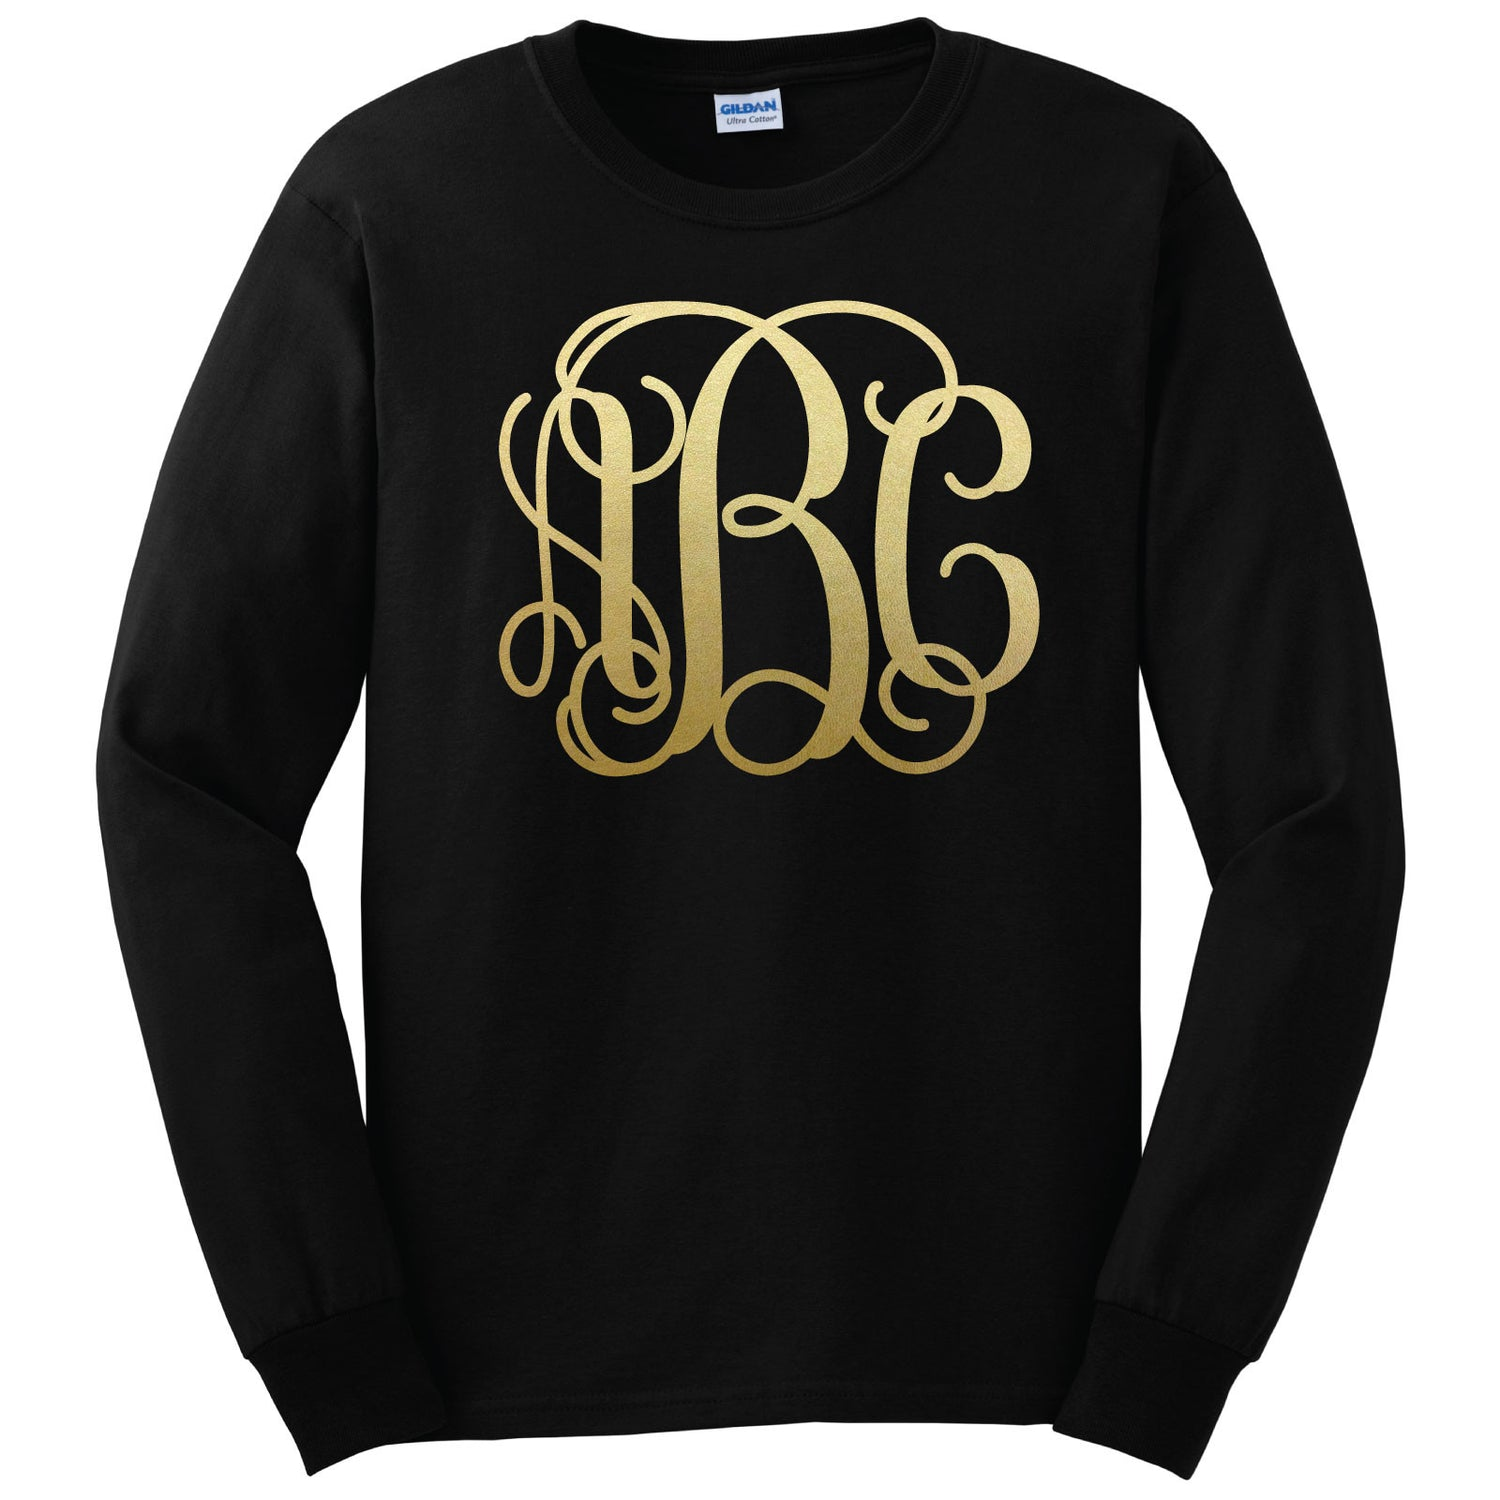 Black Shirt with Gold Monogram - Long Sleeve